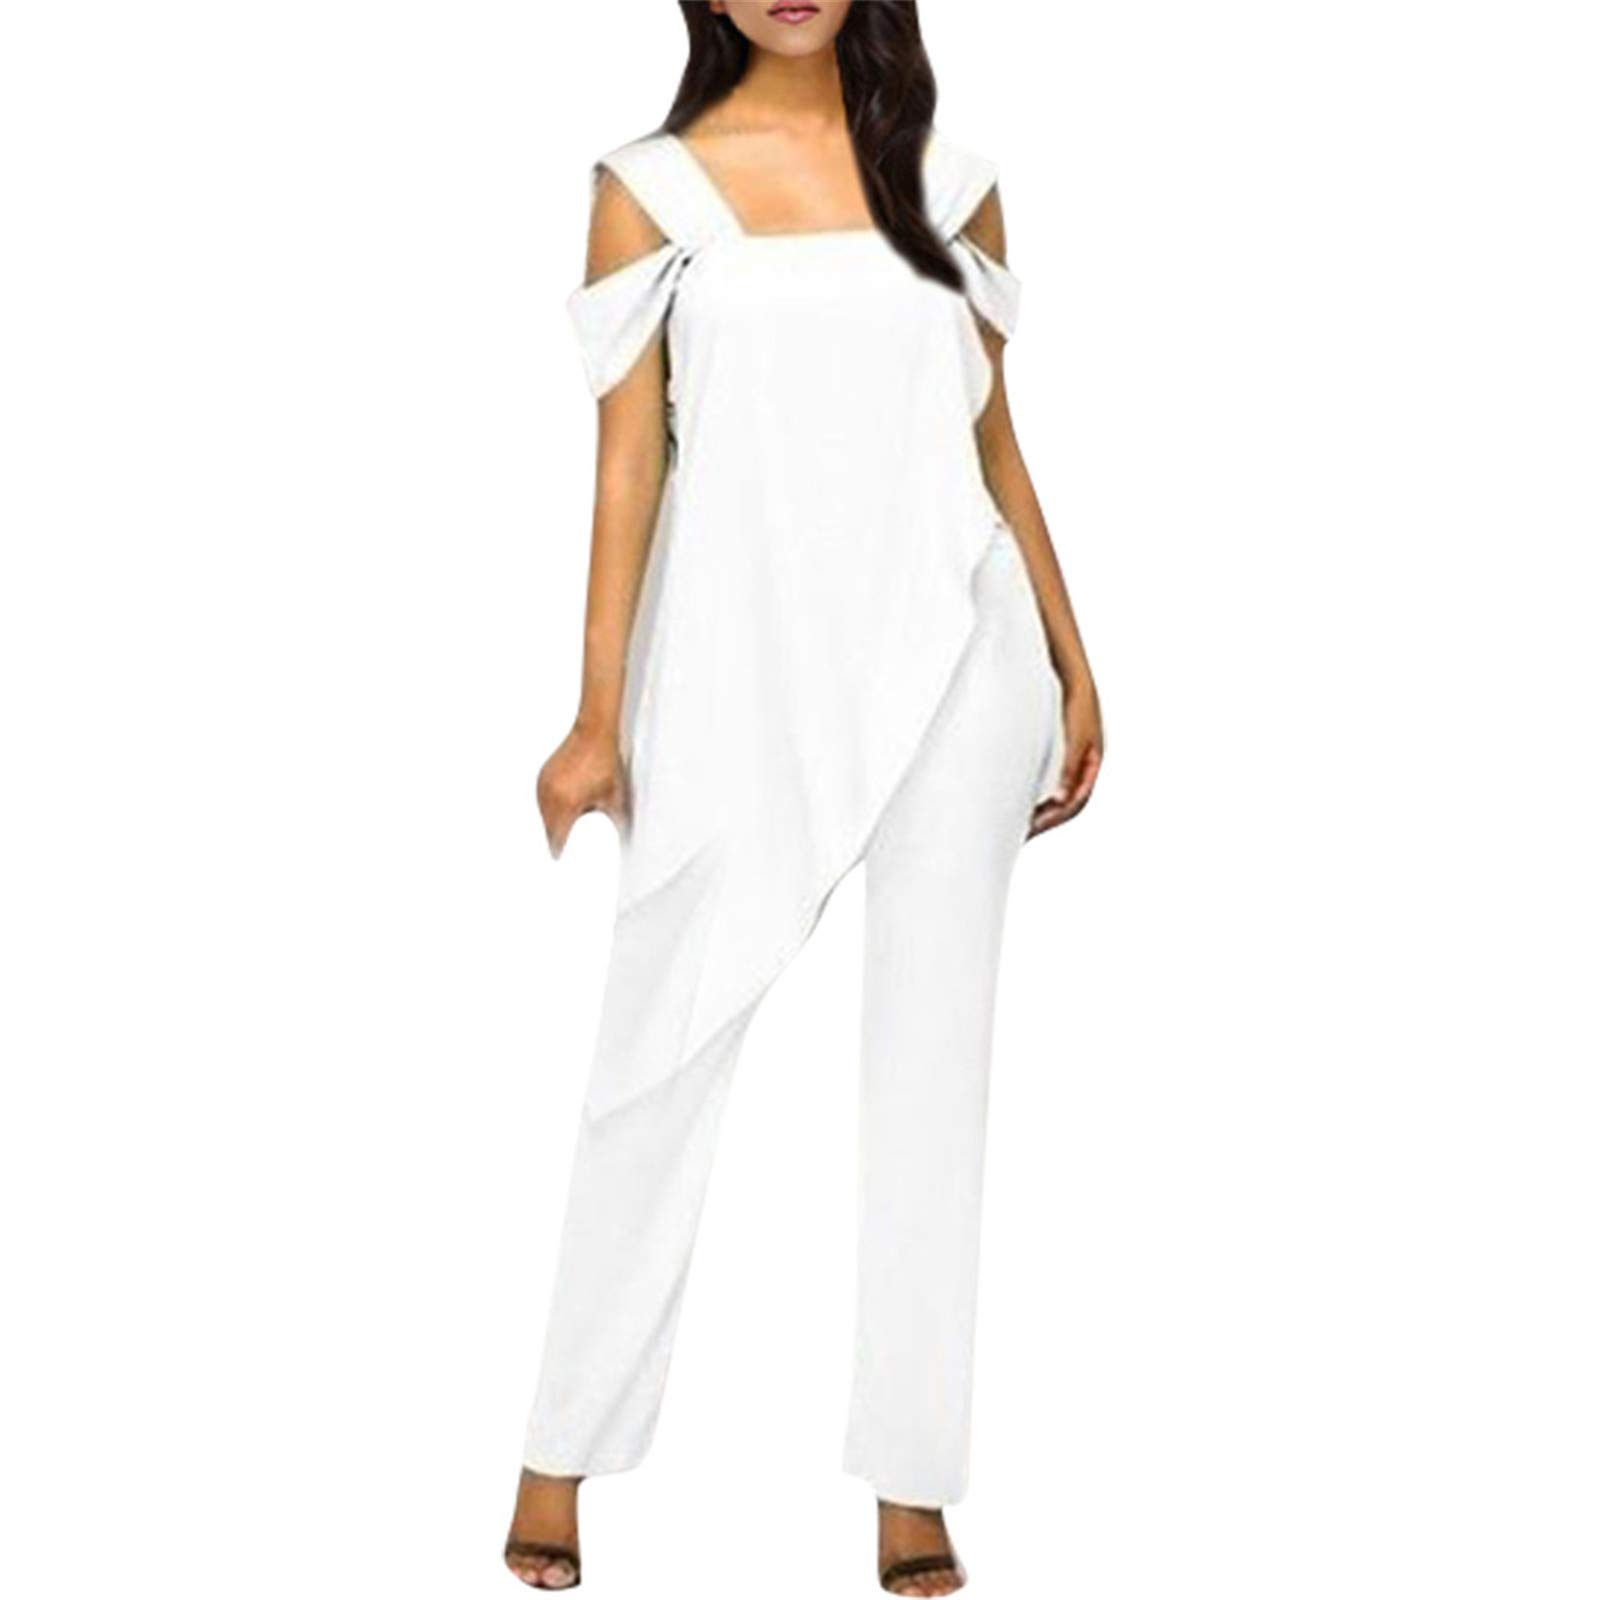 Thenxin Women's Plus Size Jumpsuit Cold Shoulder Sleeveless Layered Romper Slim Smock Pants Playsuit(White,L)